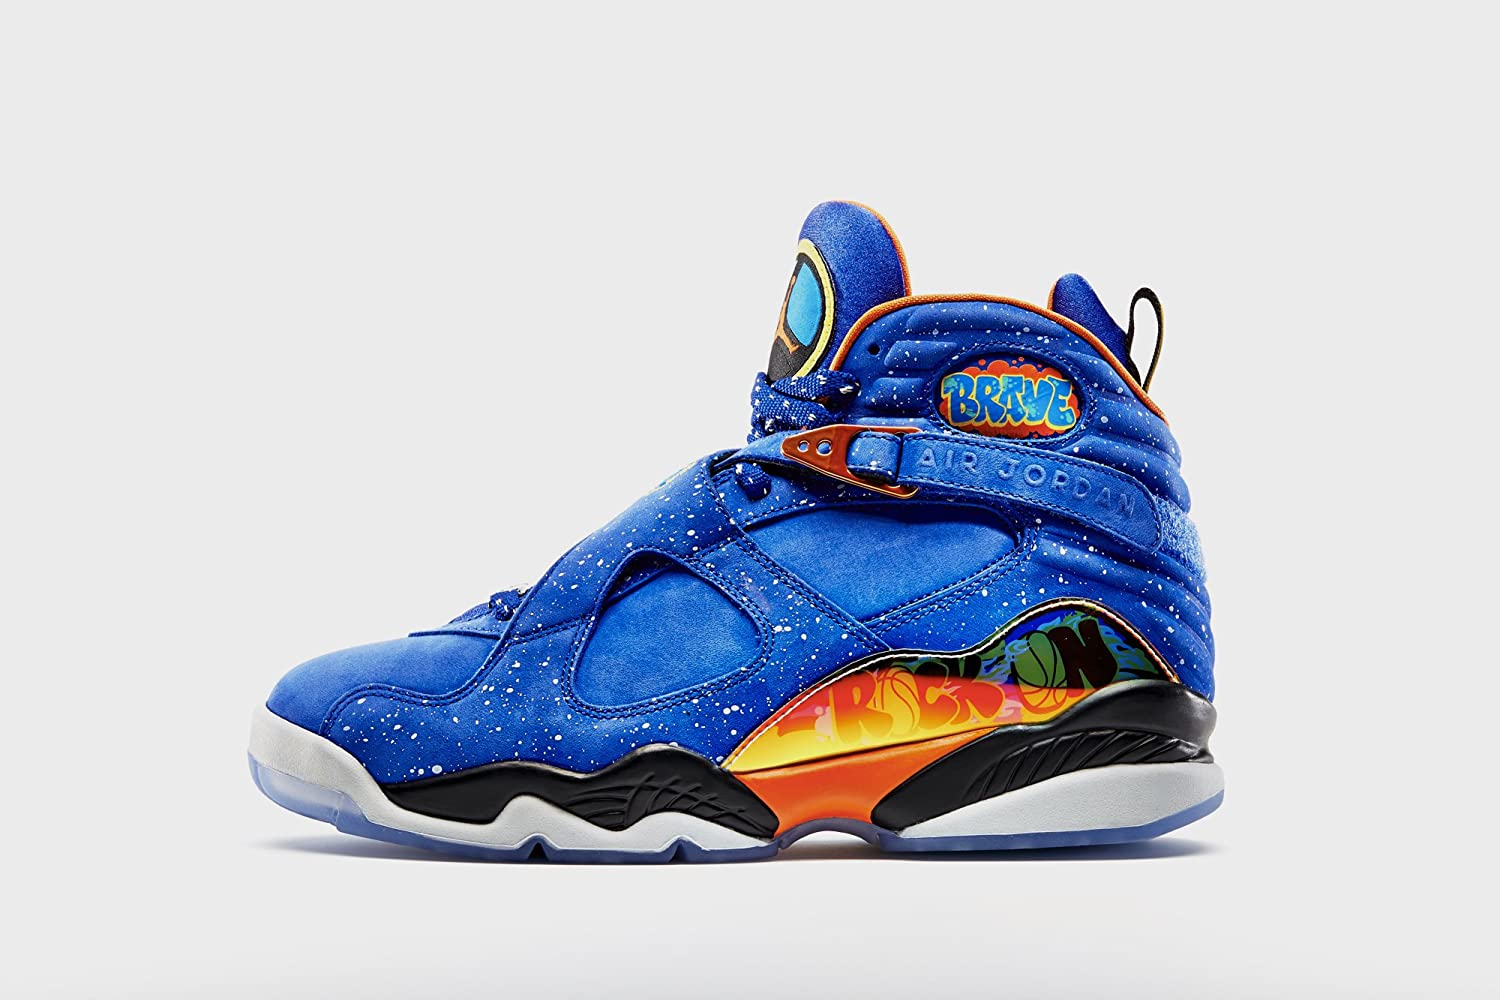 best service fb801 39c8f Amazon.com | JWONGBOUTIQUE Jordan VIII Doernbecher 729894 ...